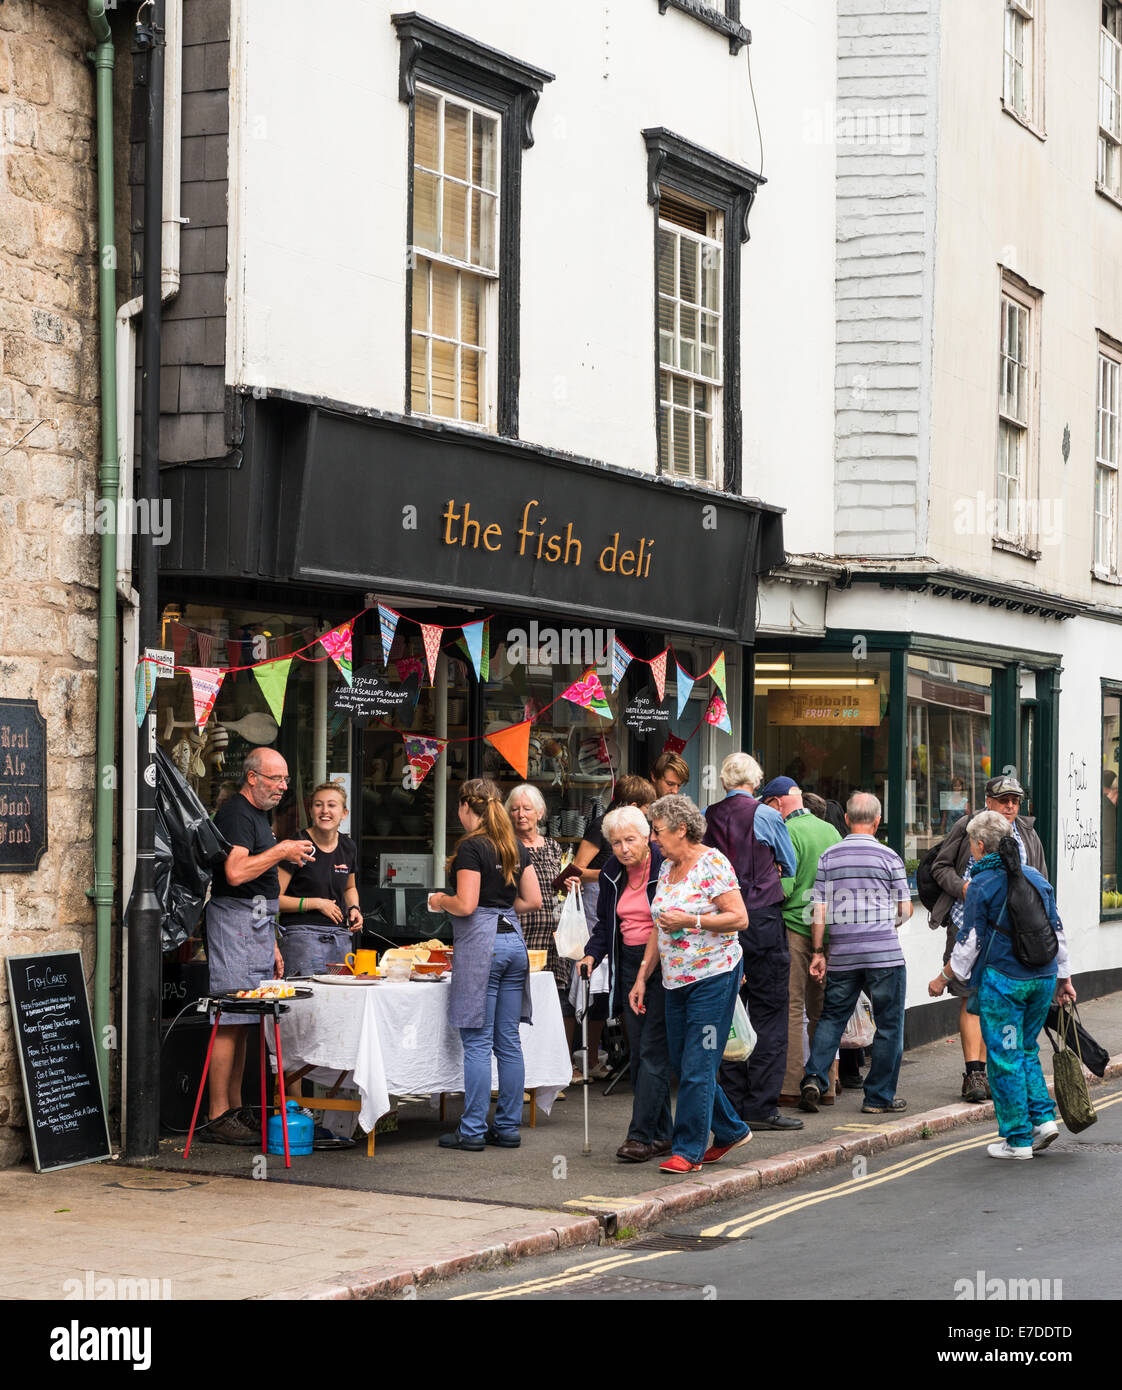 The Ashburton Food & Drink Festival. The Fish Deli does some street market trading. - Stock Image